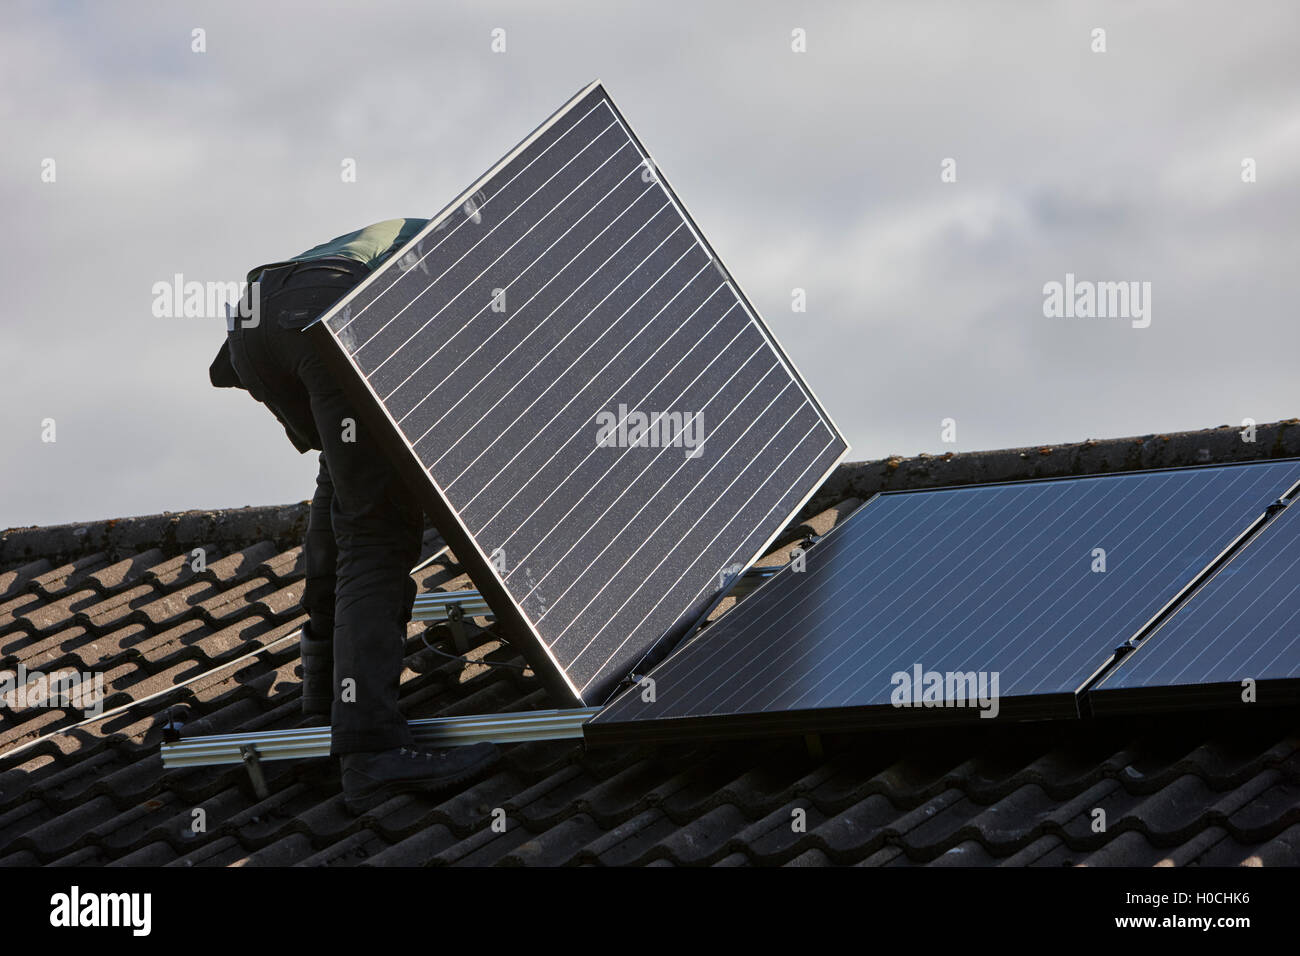 pv panel uk stockfotos pv panel uk bilder alamy. Black Bedroom Furniture Sets. Home Design Ideas